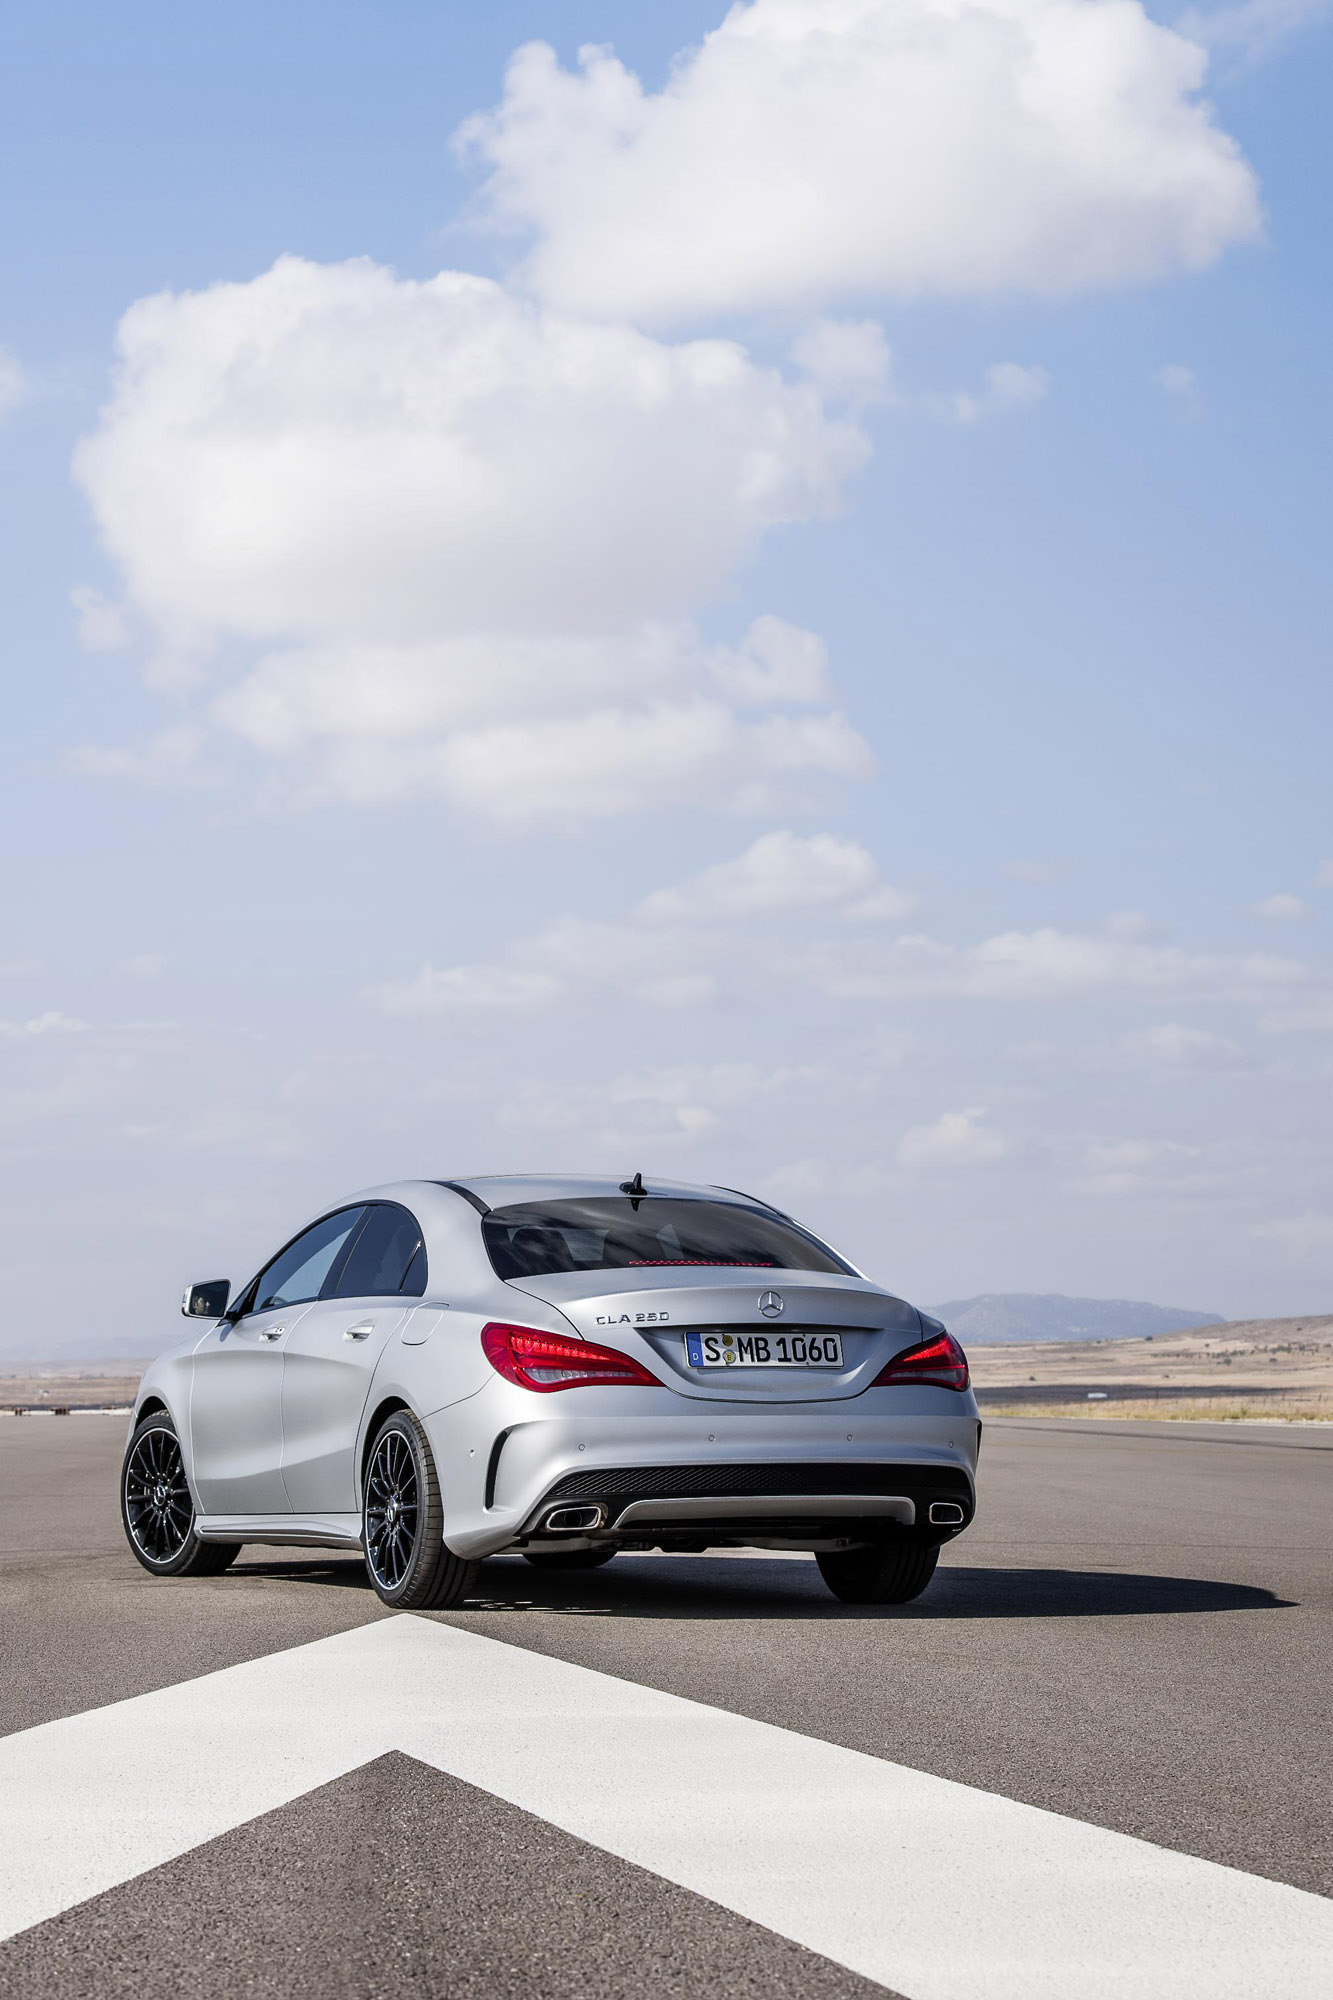 Mercedes Benz Establishes New Segment With Cla Class